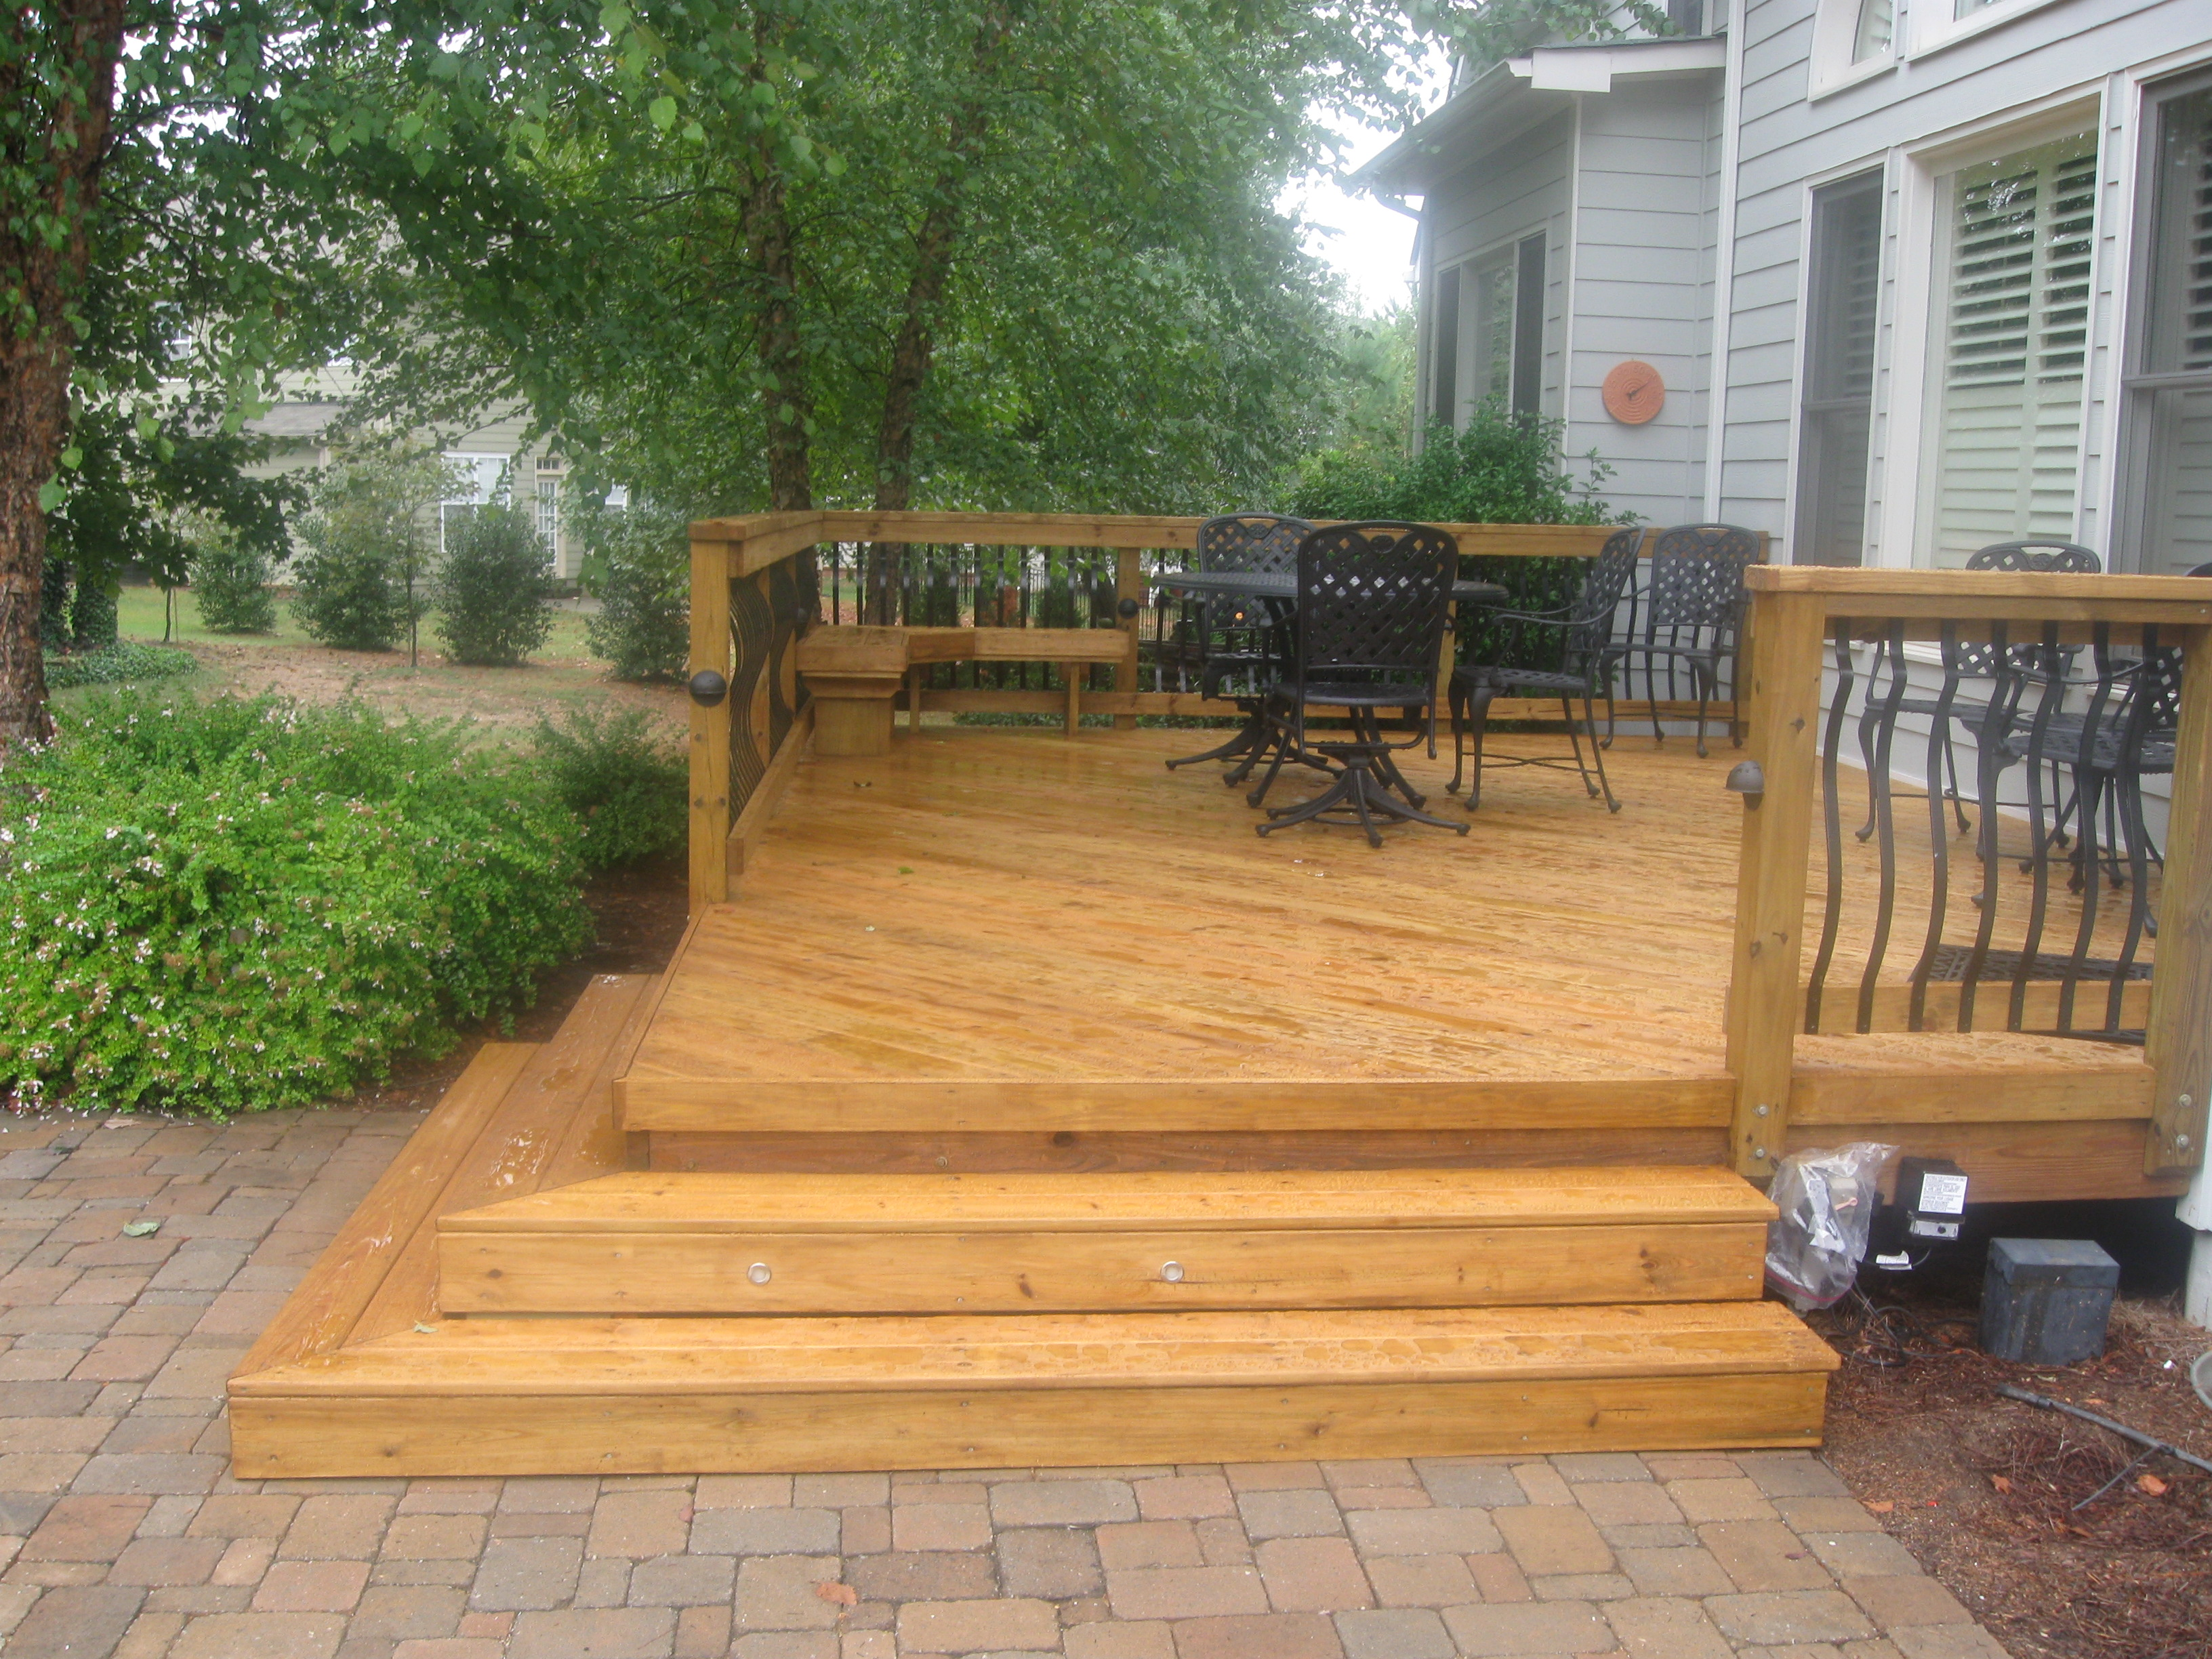 Composite deck composite deck versus wood for Decks and patios design ideas